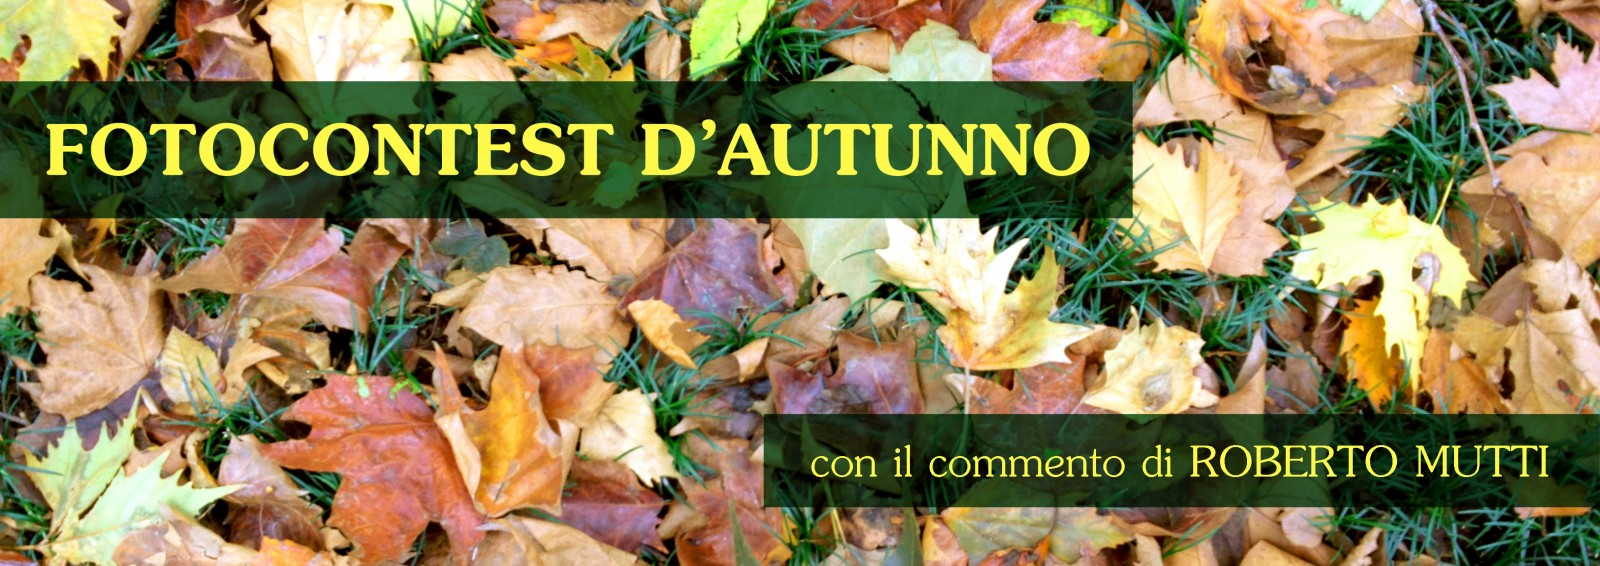 Fotocontest autunno 2